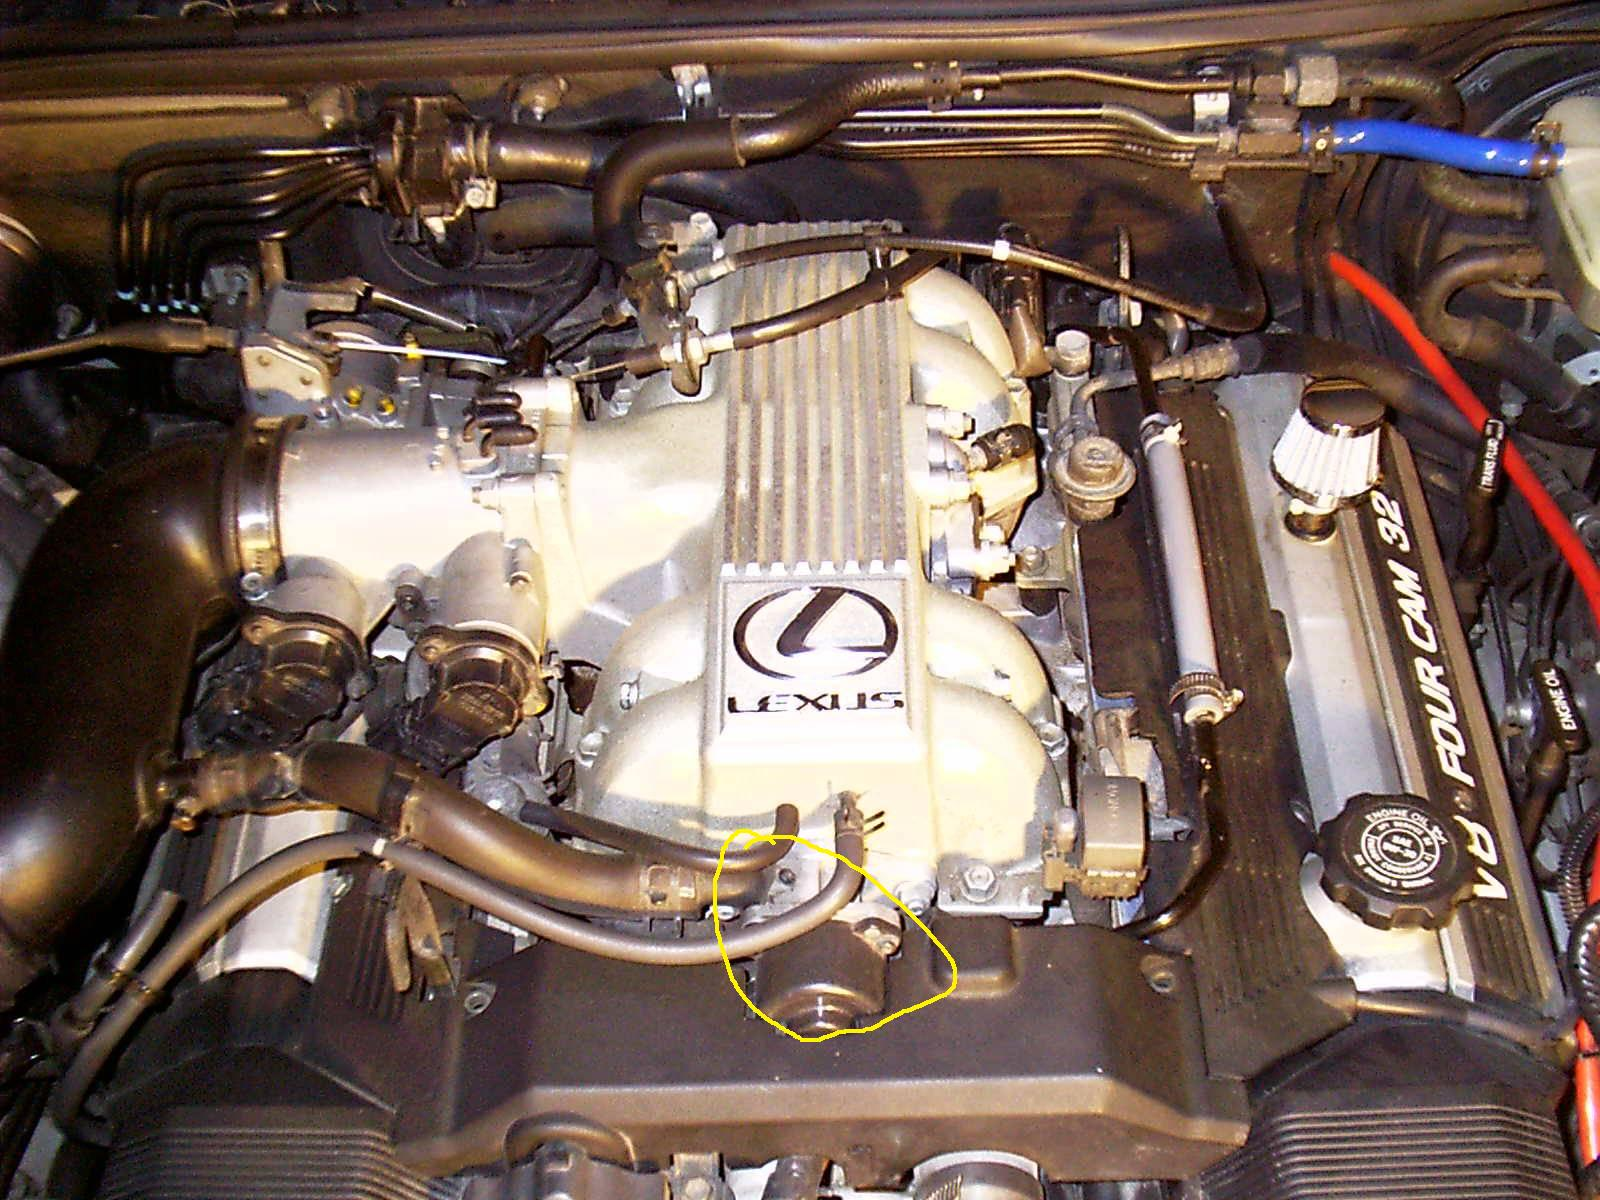 1994 Lexus Sc400 With 51128 Actual Miles Engine Starts And